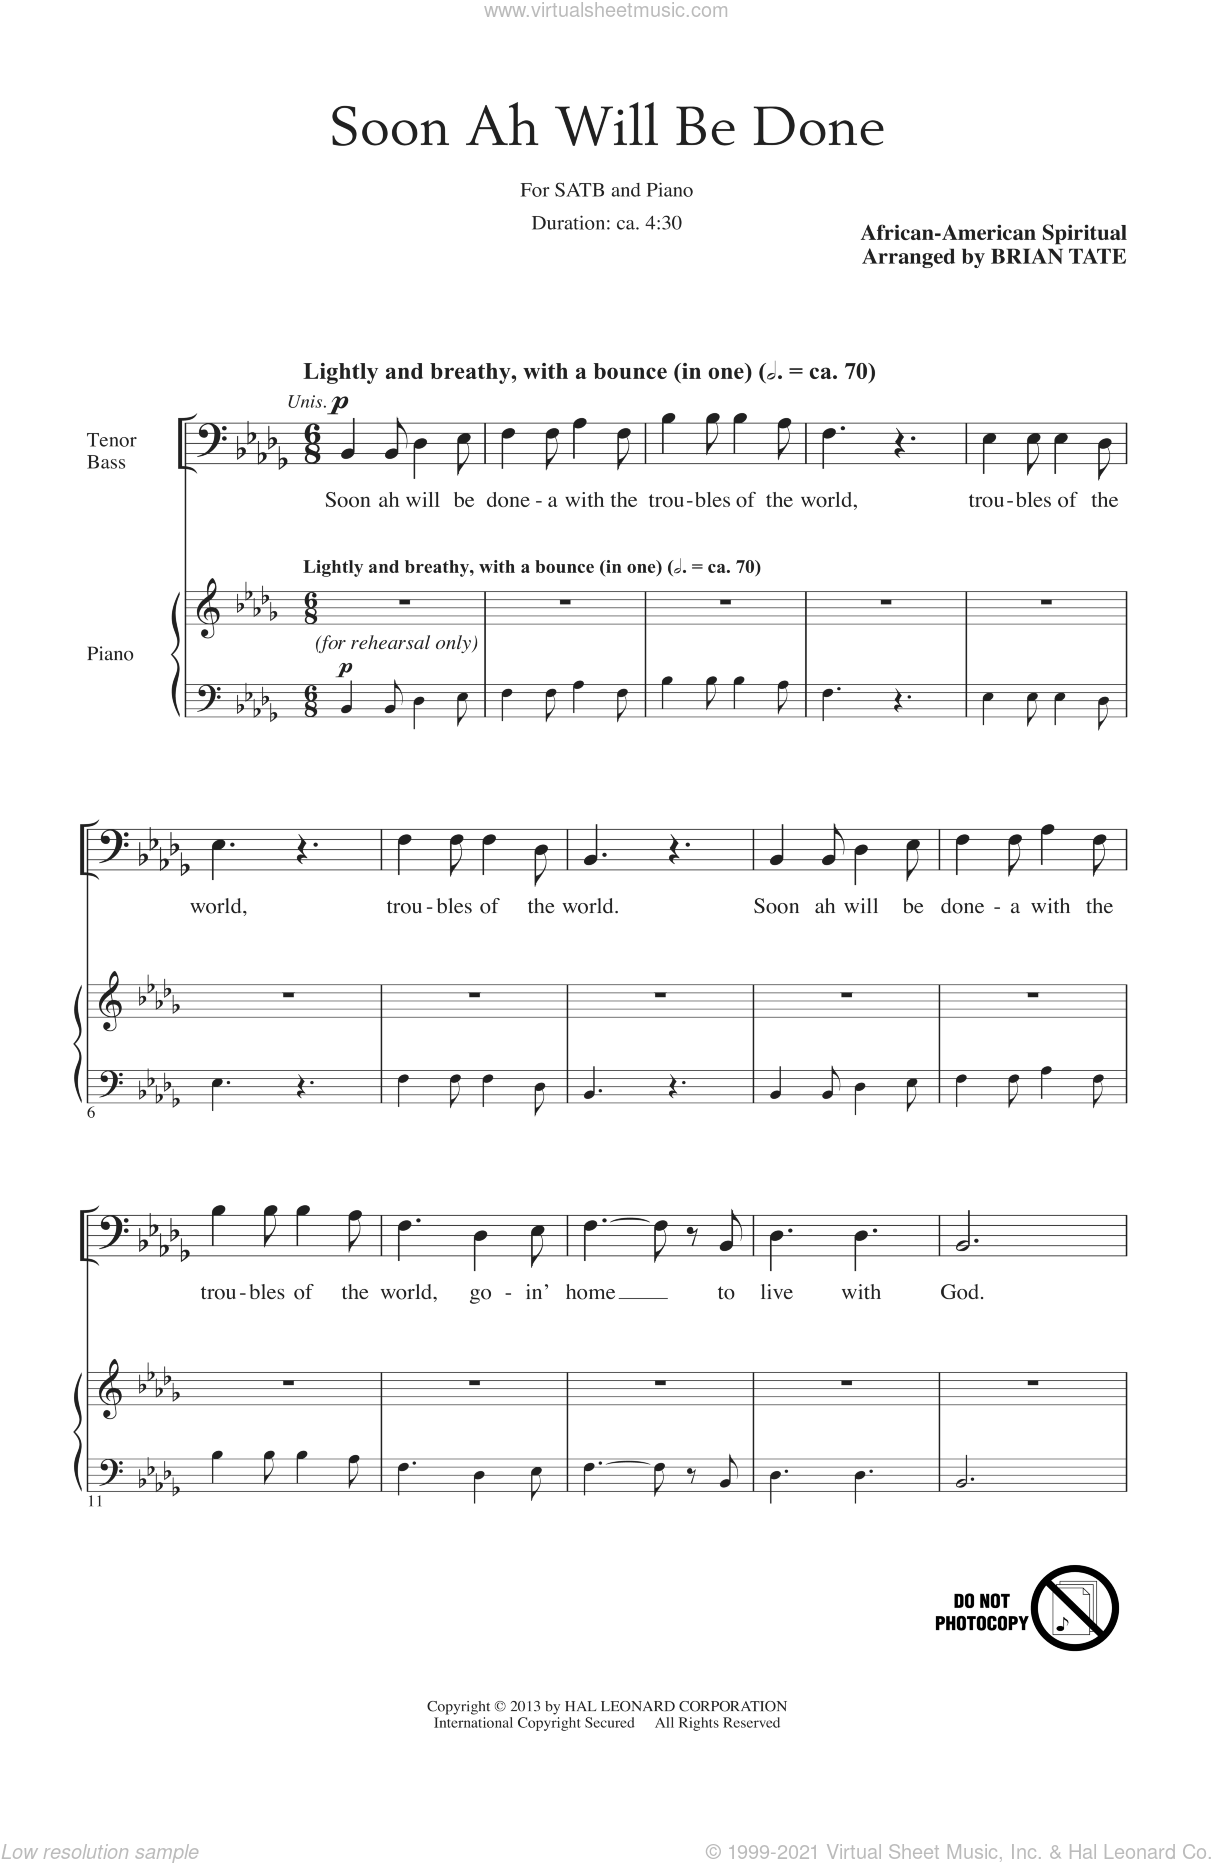 Soon Ah Will Be Done sheet music for choir (SATB: soprano, alto, tenor, bass) by Brian Tate and Miscellaneous, intermediate